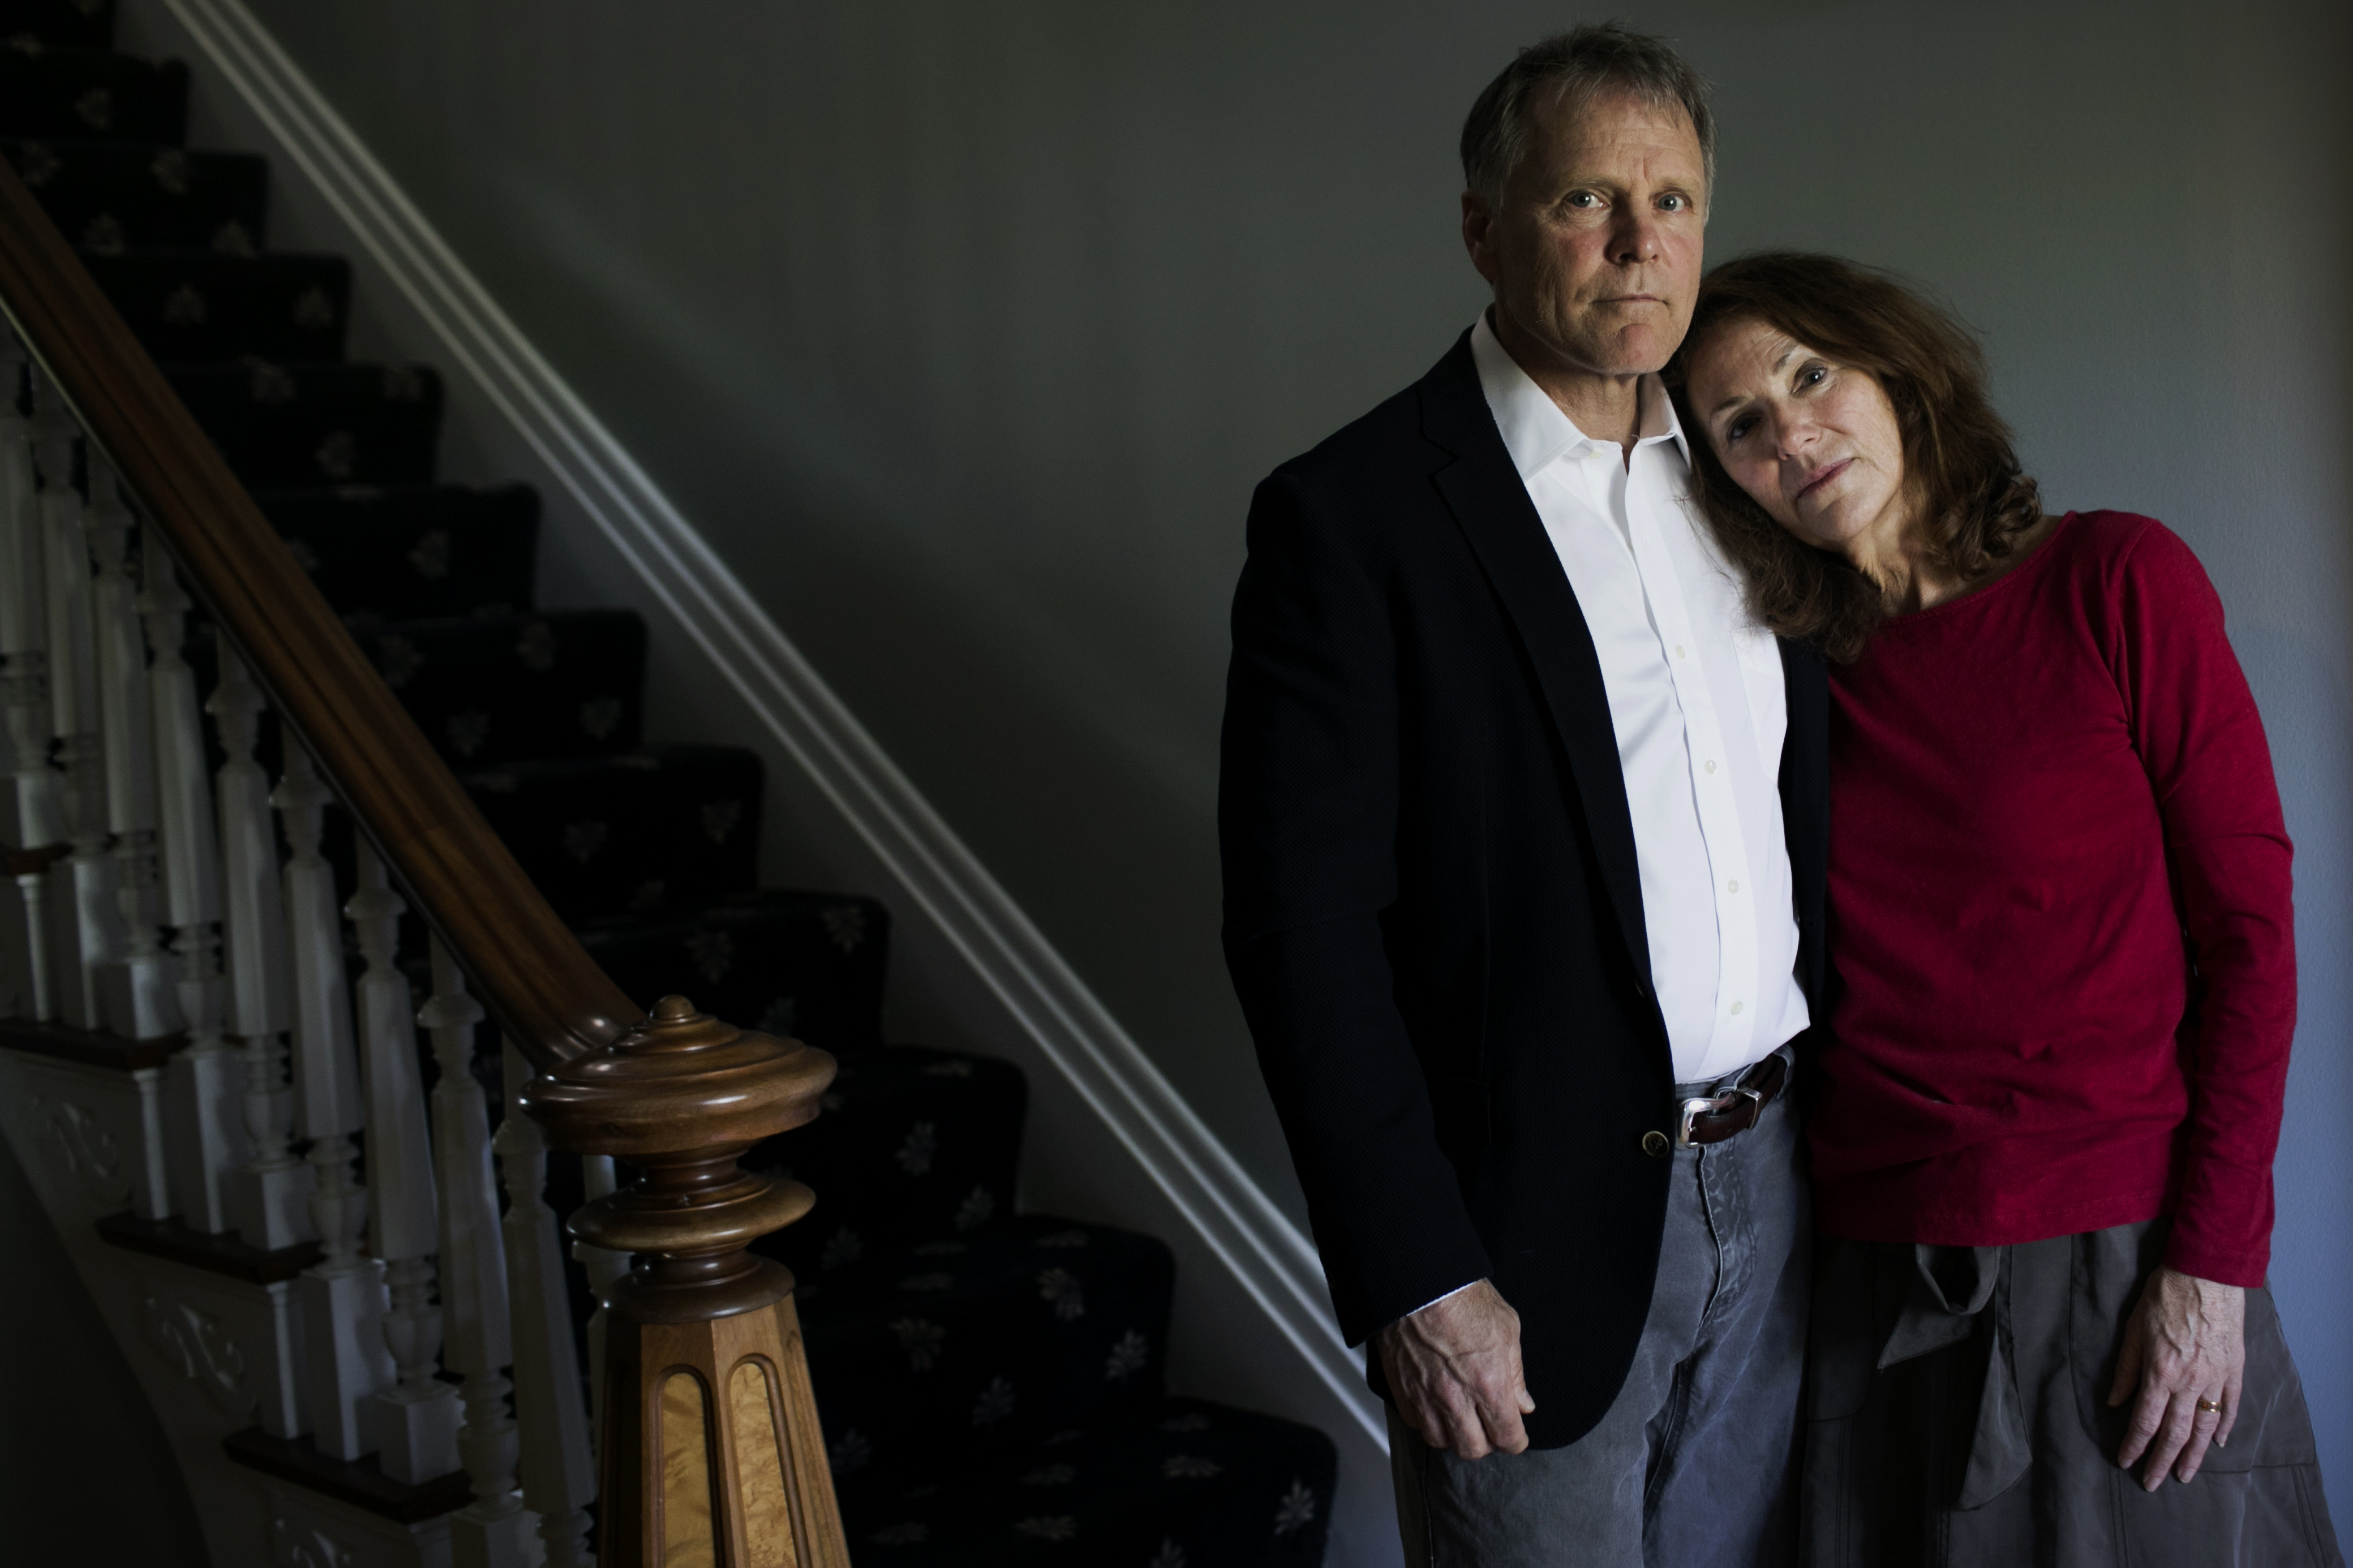 WYOMING, OHIO - APRIL 26: Fred and Cindy Warmbier, the parents of Otto Warmbier stand in their home.